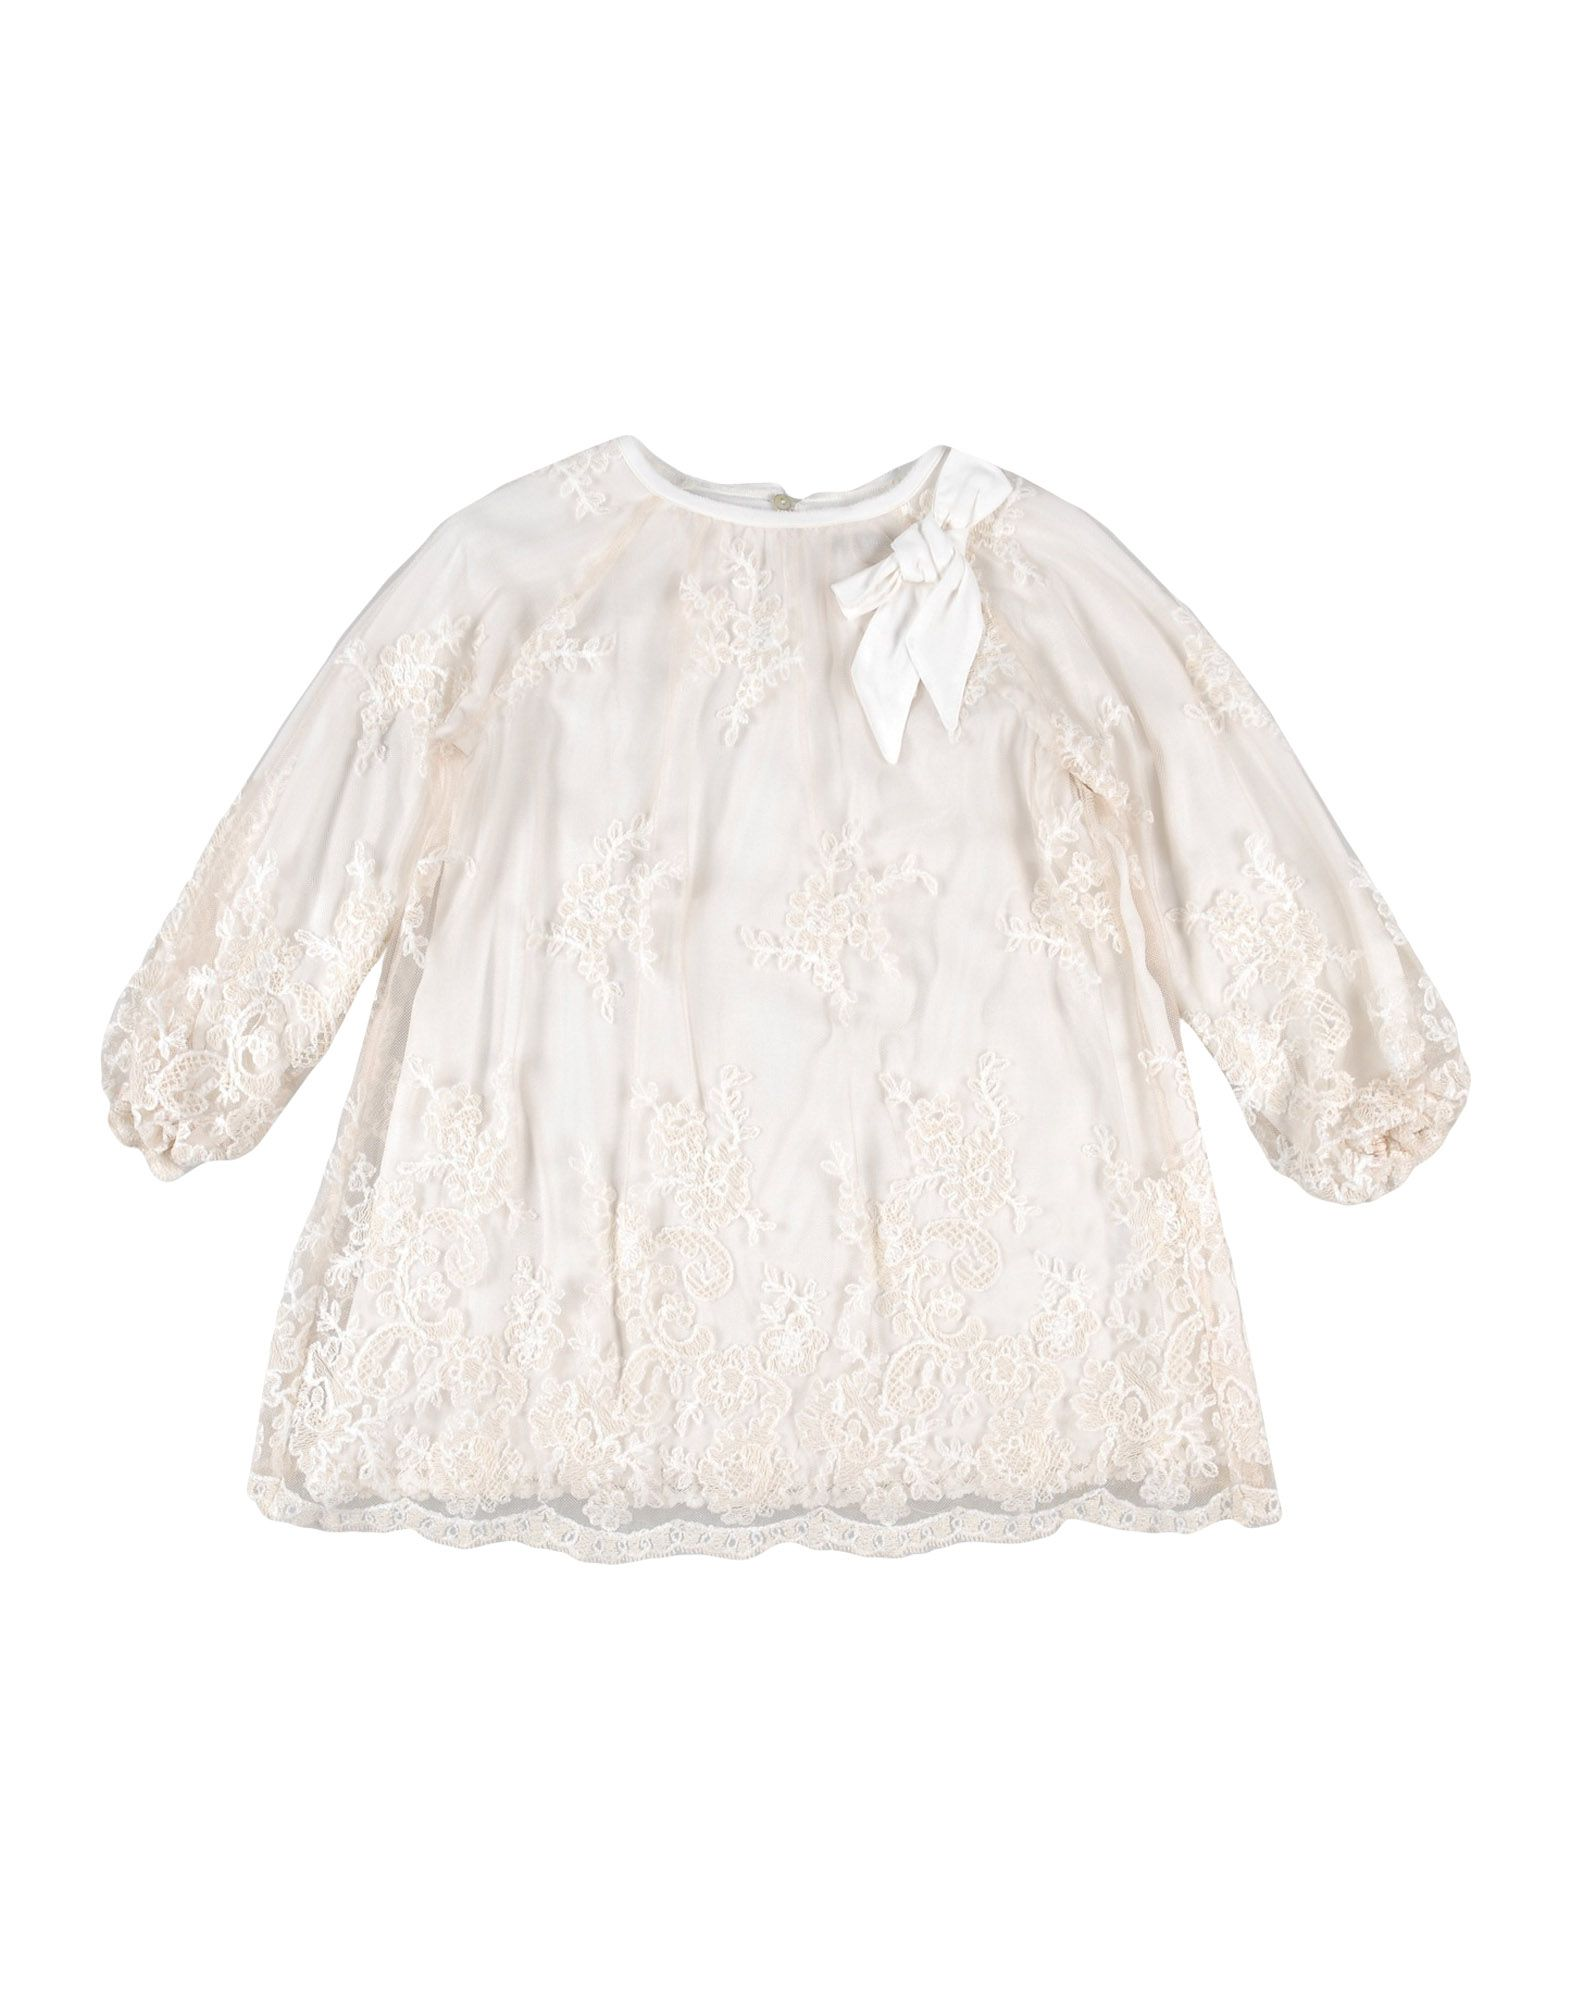 ERMANNO SCERVINO JUNIOR Dress in Ivory